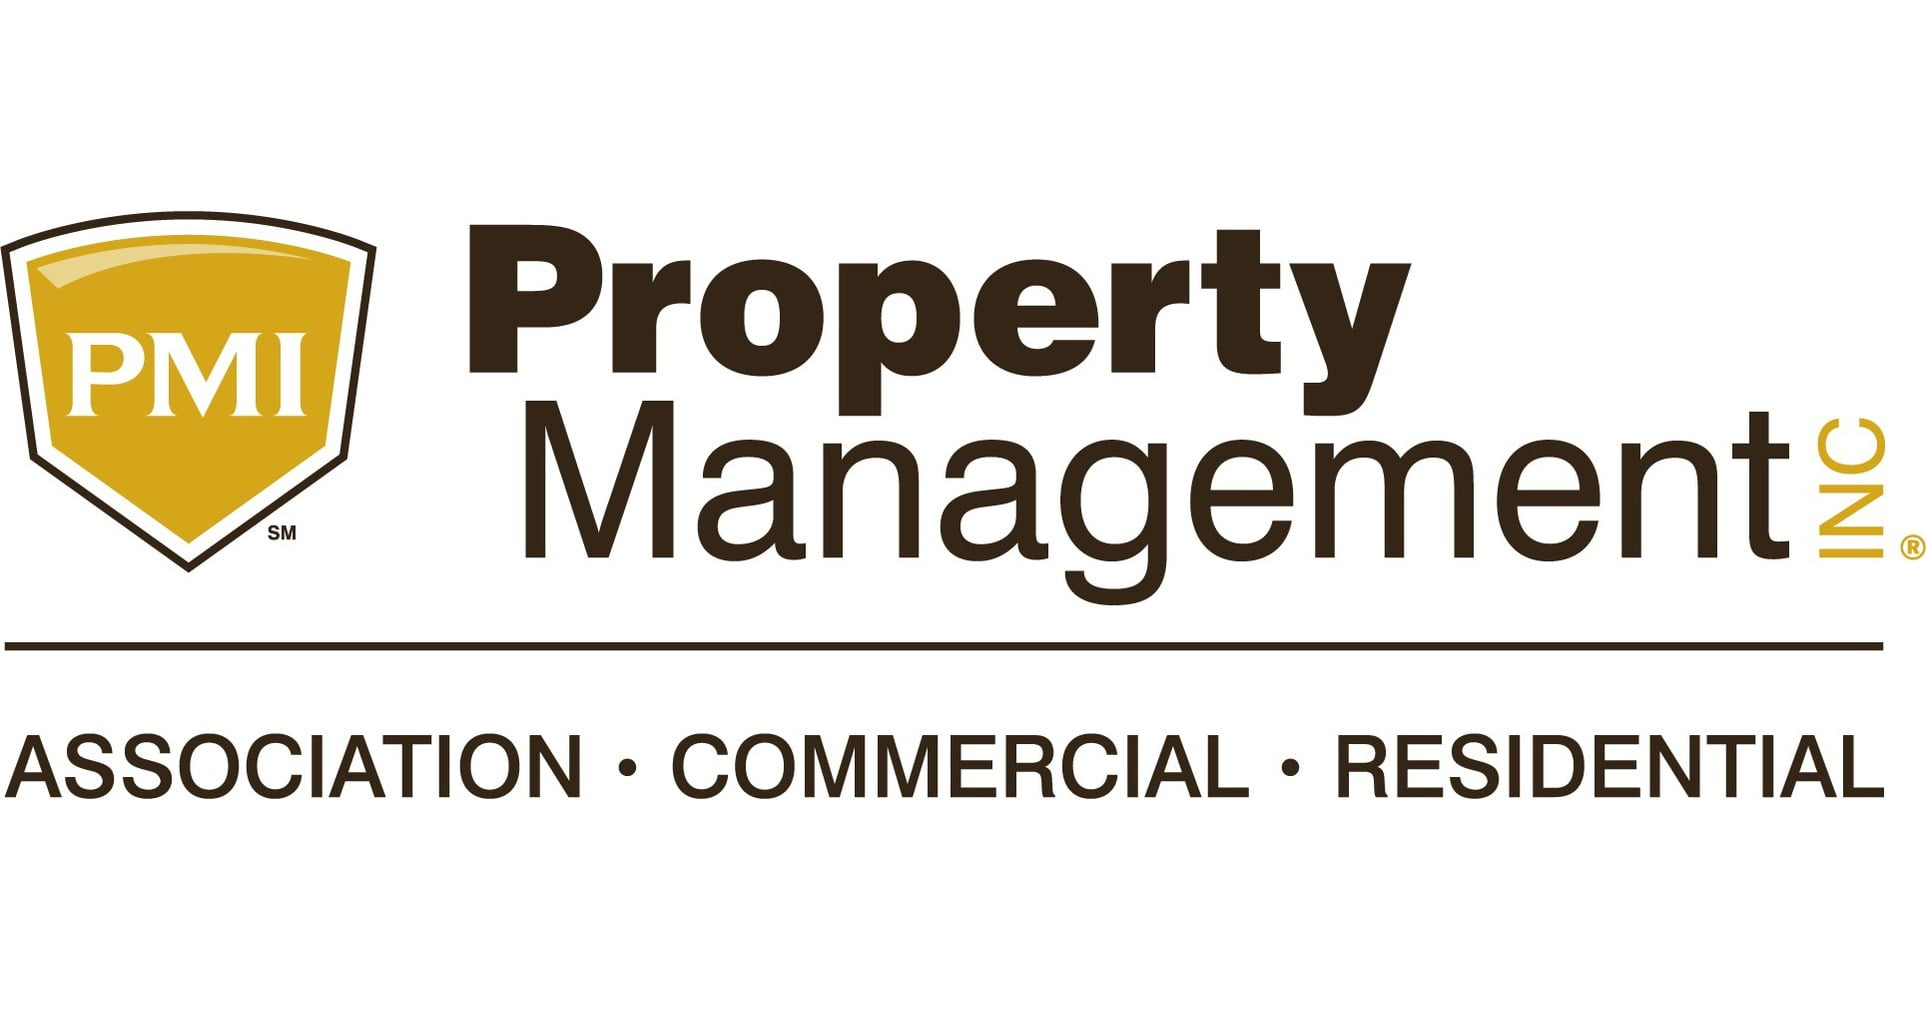 Property Management Inc. Advances Digital Marketing Tools for Its Franchises – PR Newswire (press release)